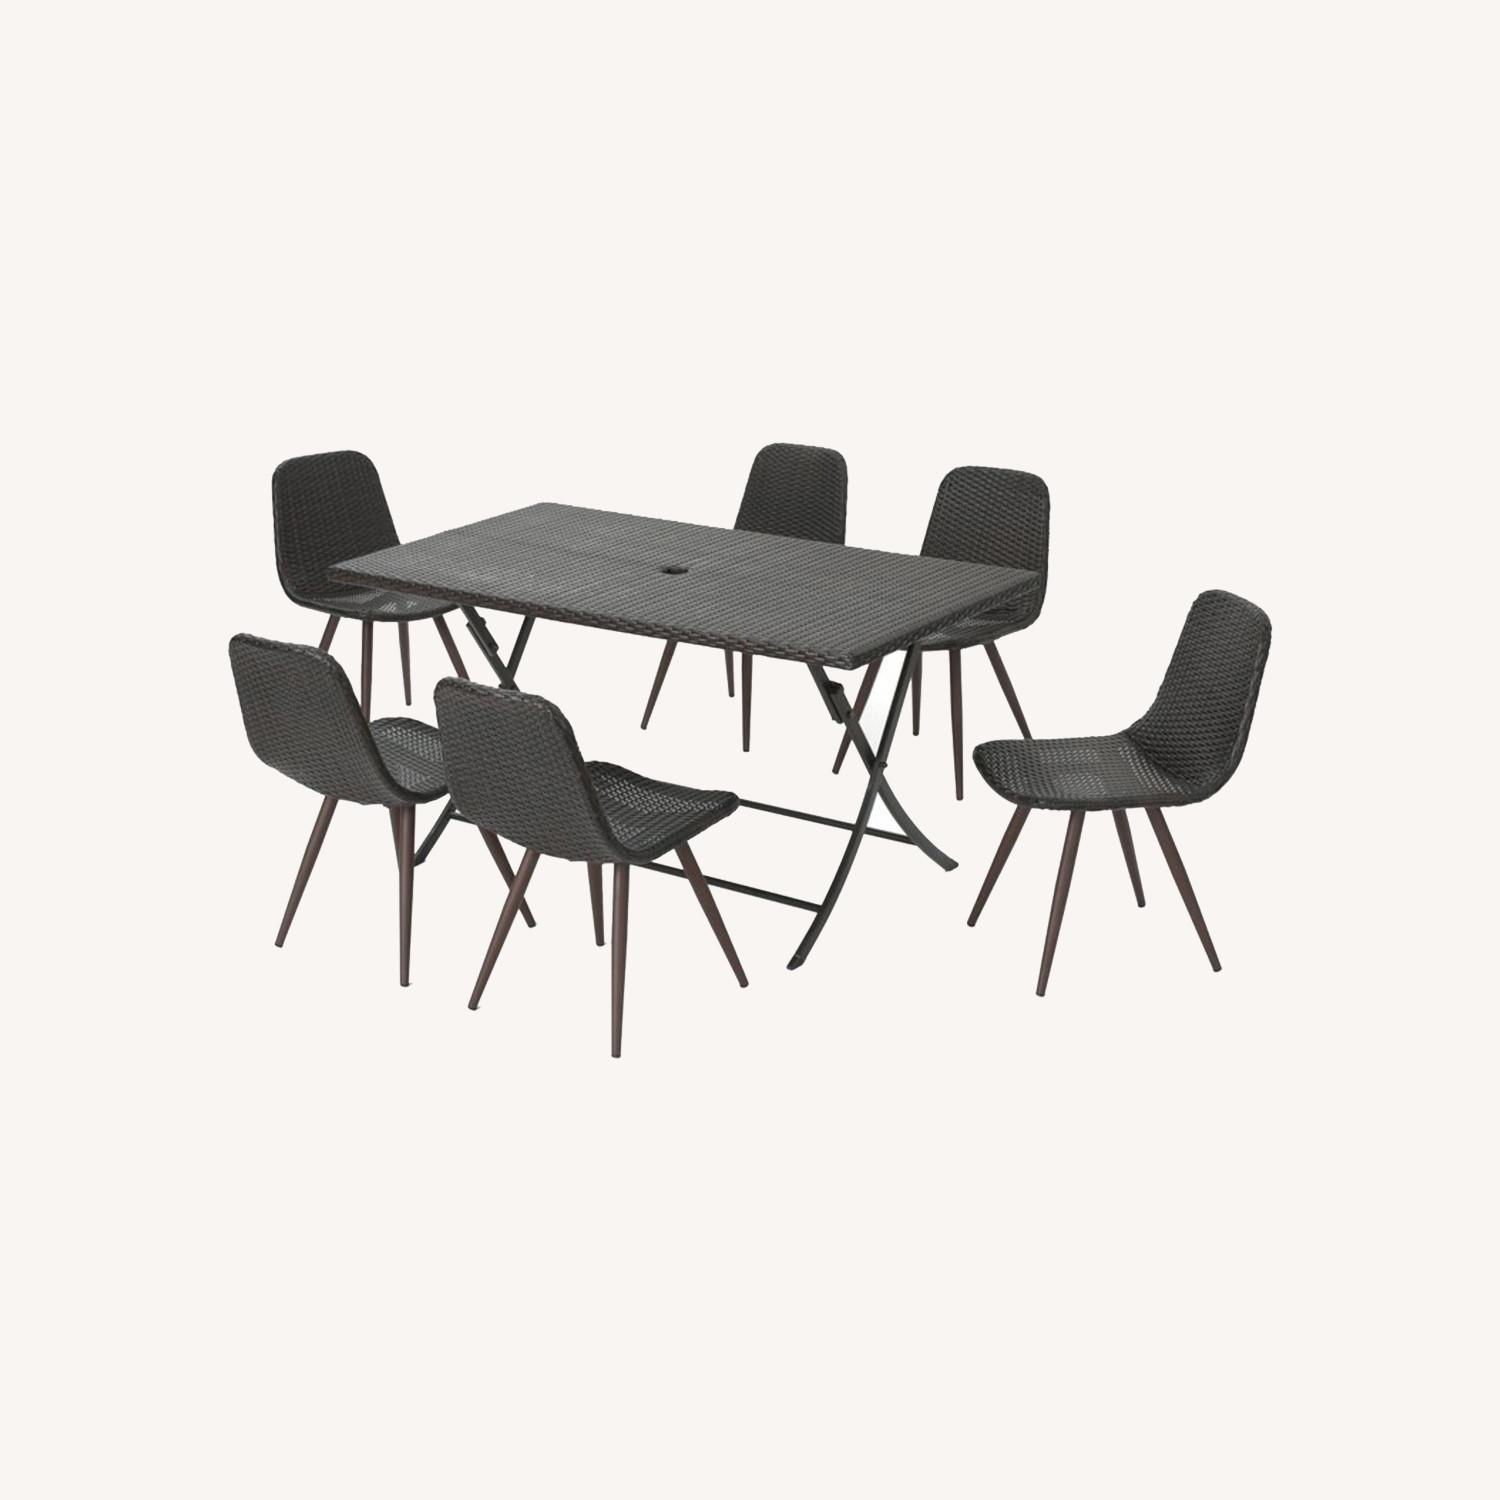 Outdoor Wicker Table and 6 Chairs - image-0